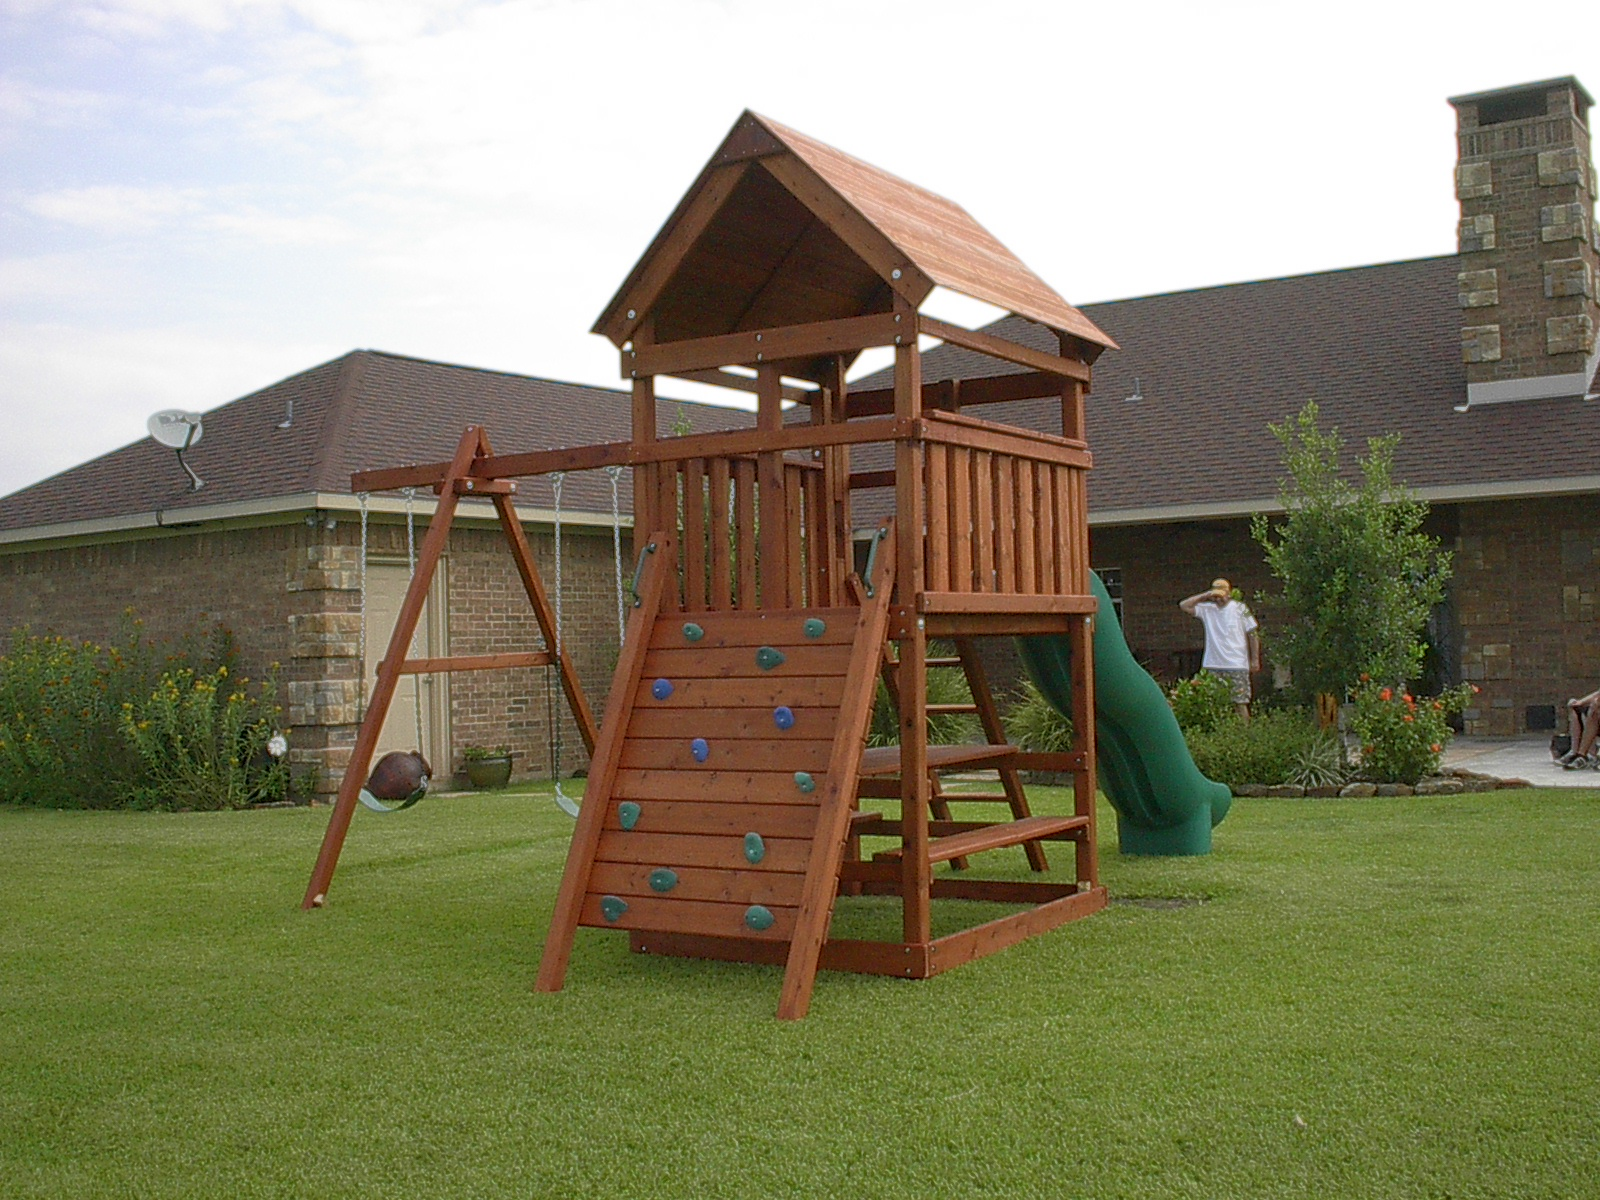 Wood Swing Set Plans Woodworking Plans For Building A